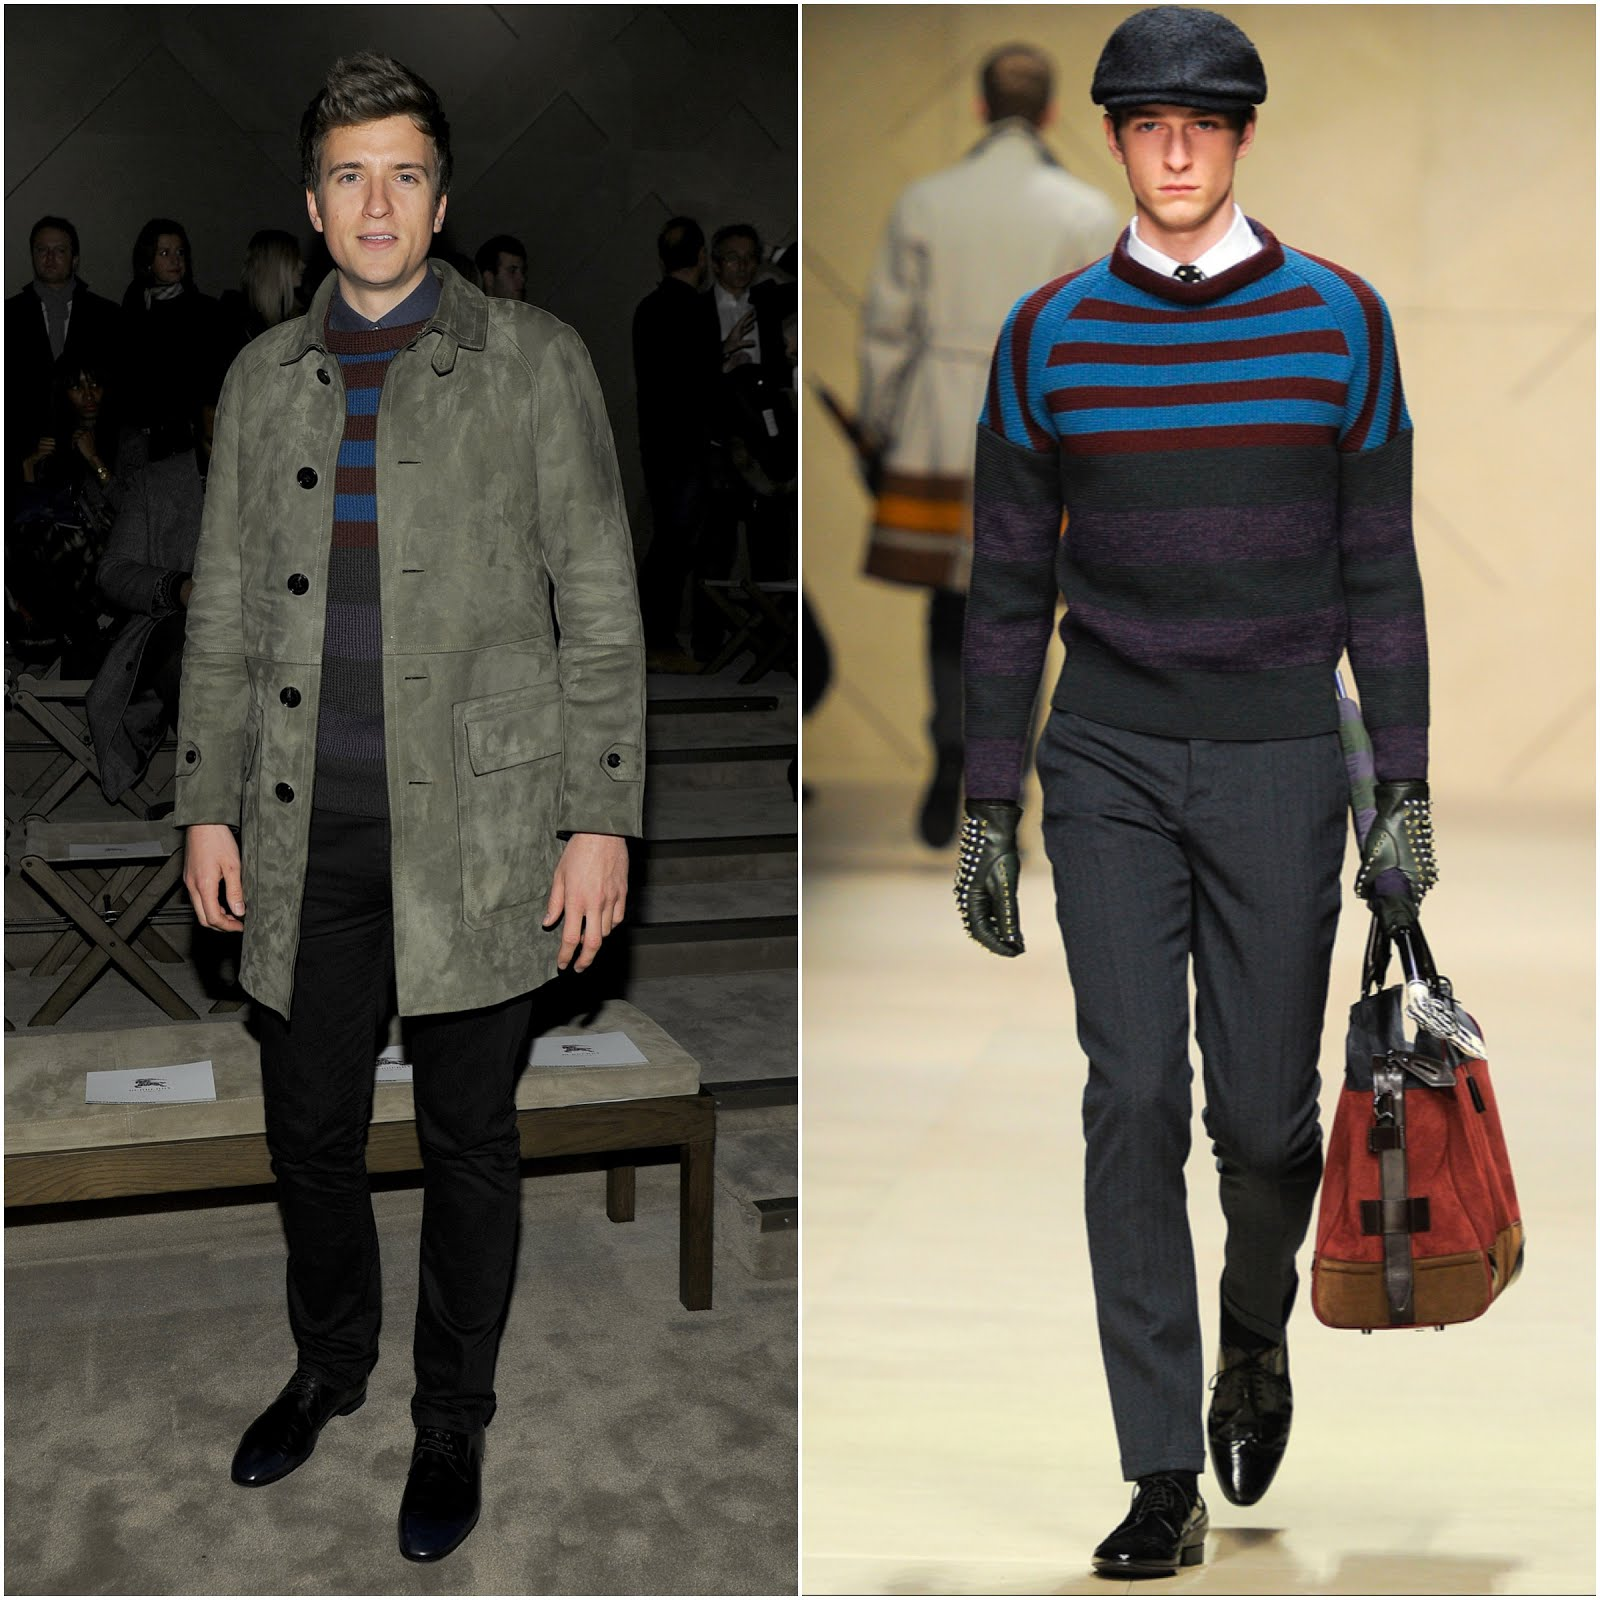 00O00 Menswear Blog Greg James in Burberry - Burberry Prorsum Menswear FW2013, #MFW